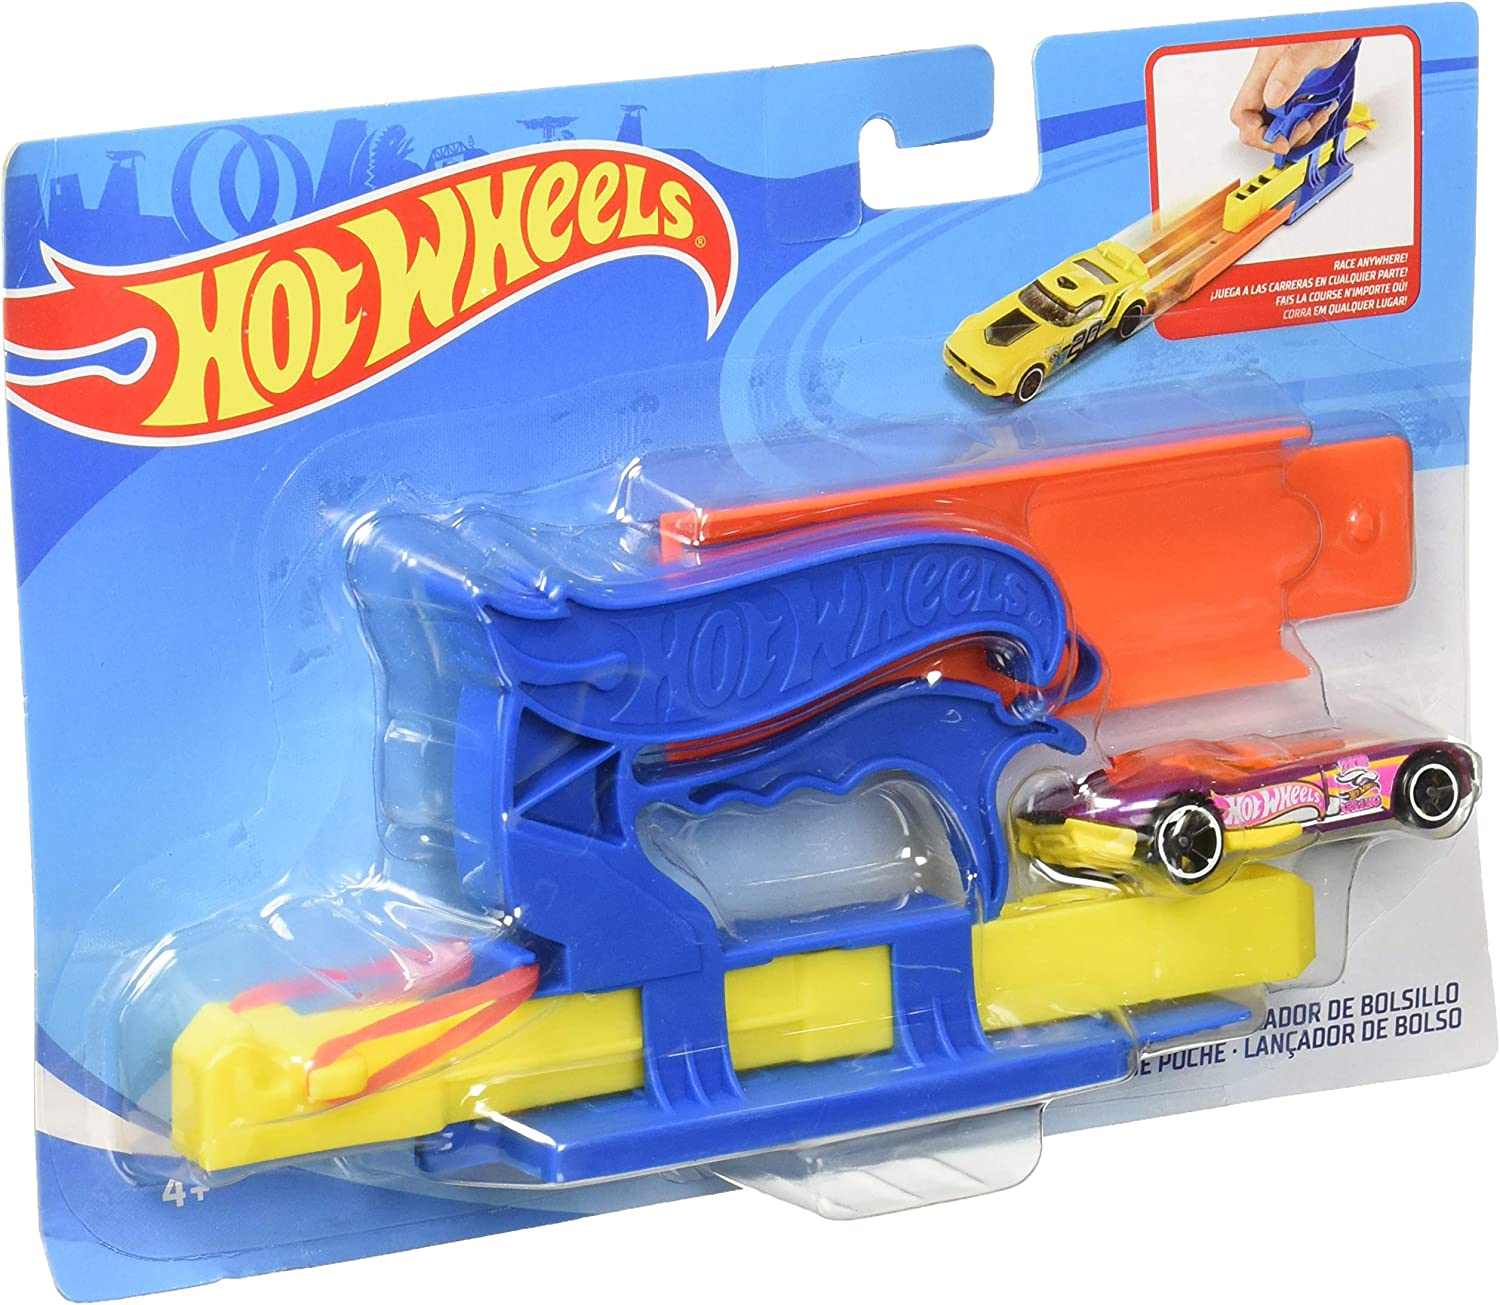 Hot Wheels FVM09 Pocket Launcher Playset with Car, Multicoloured